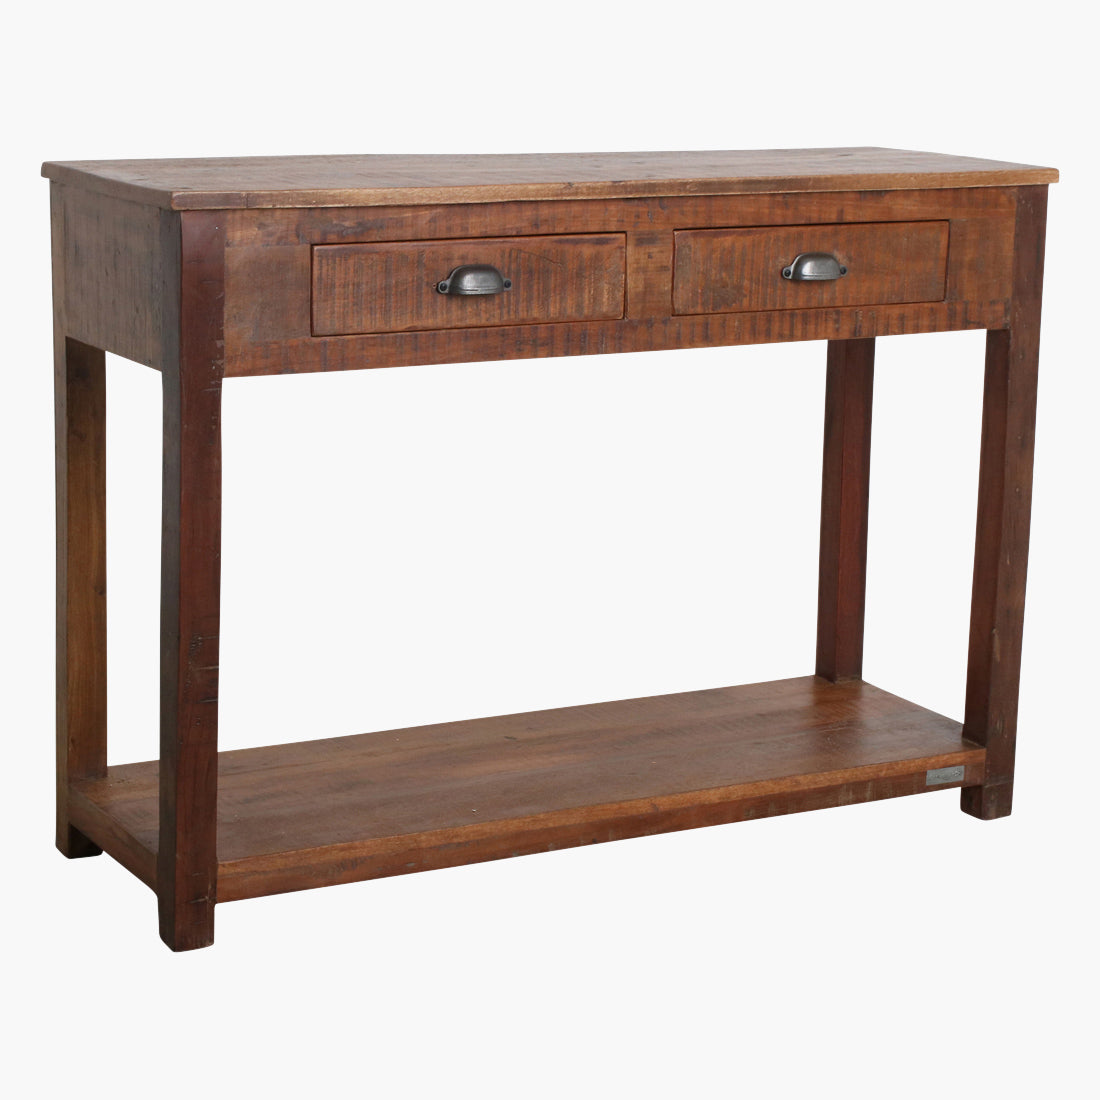 Factory side table/console